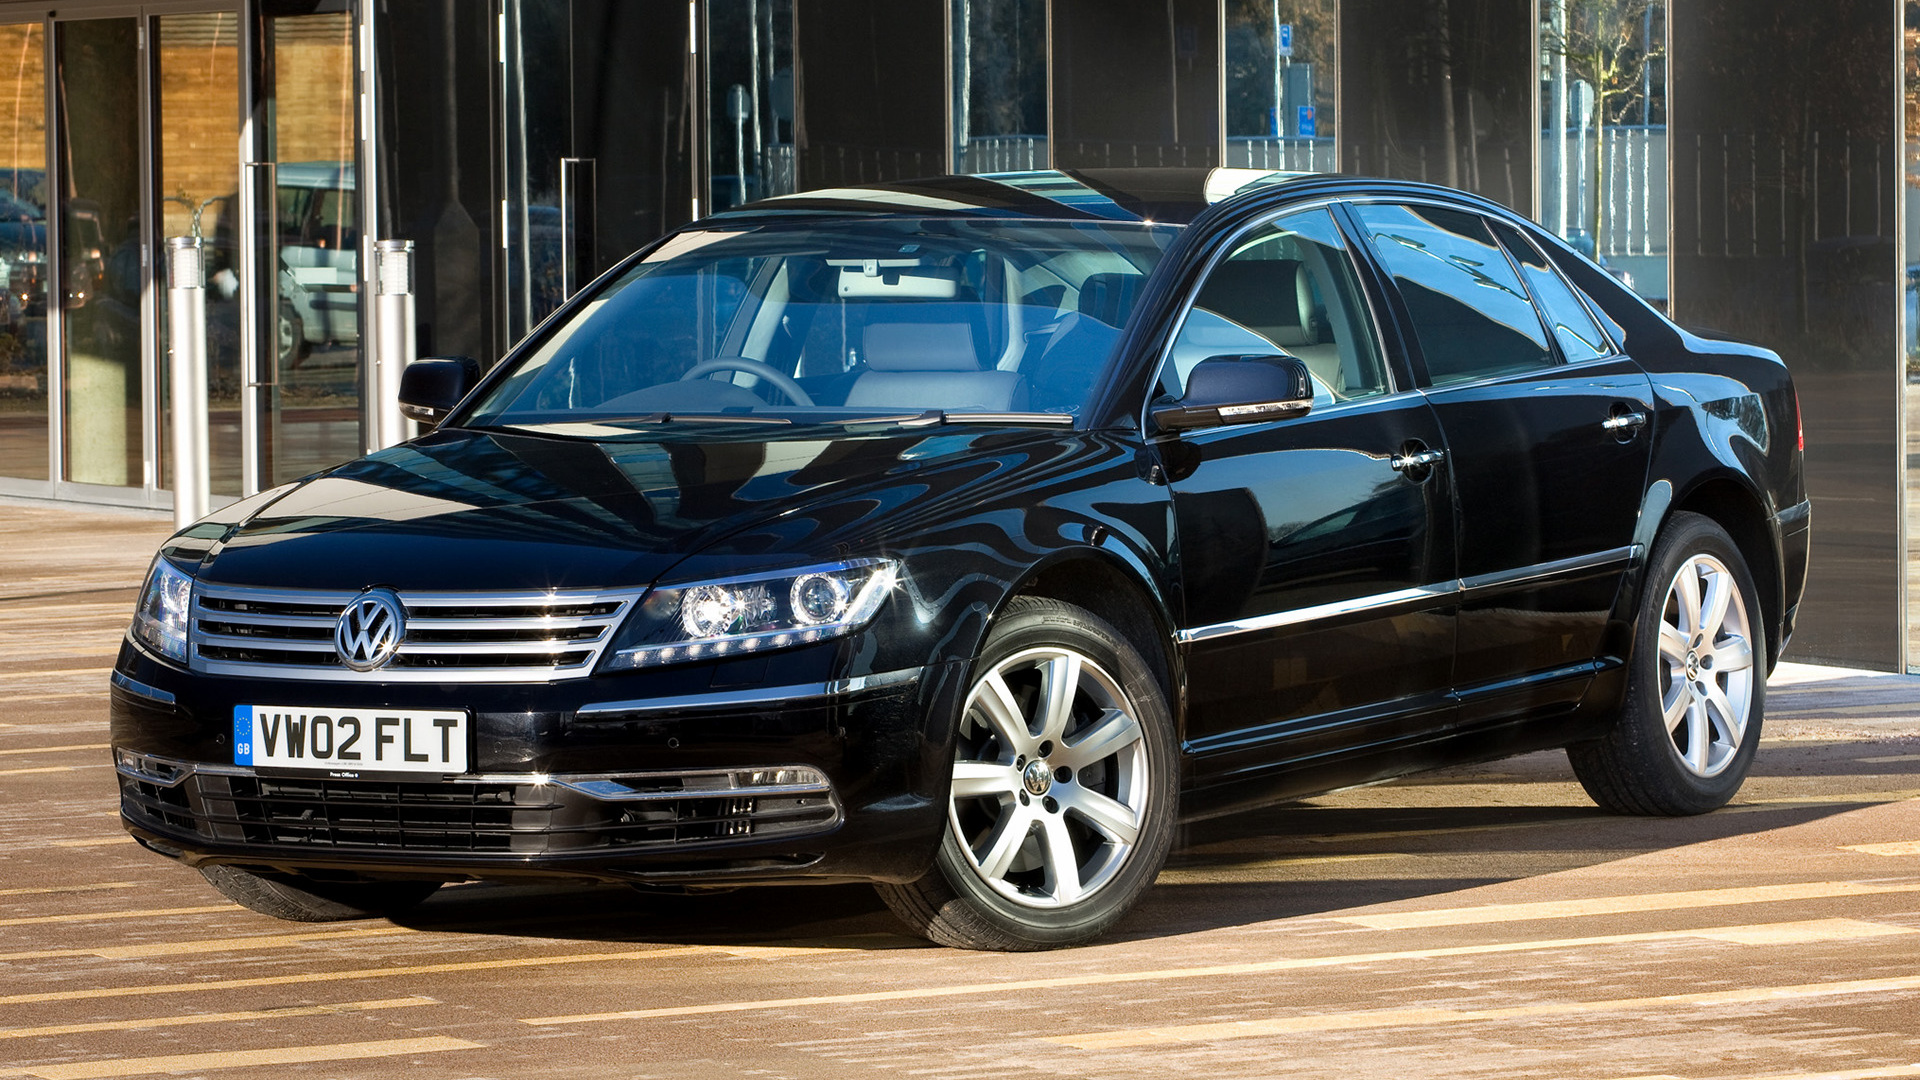 2010 Volkswagen Phaeton (UK) - Wallpapers and HD Images ...